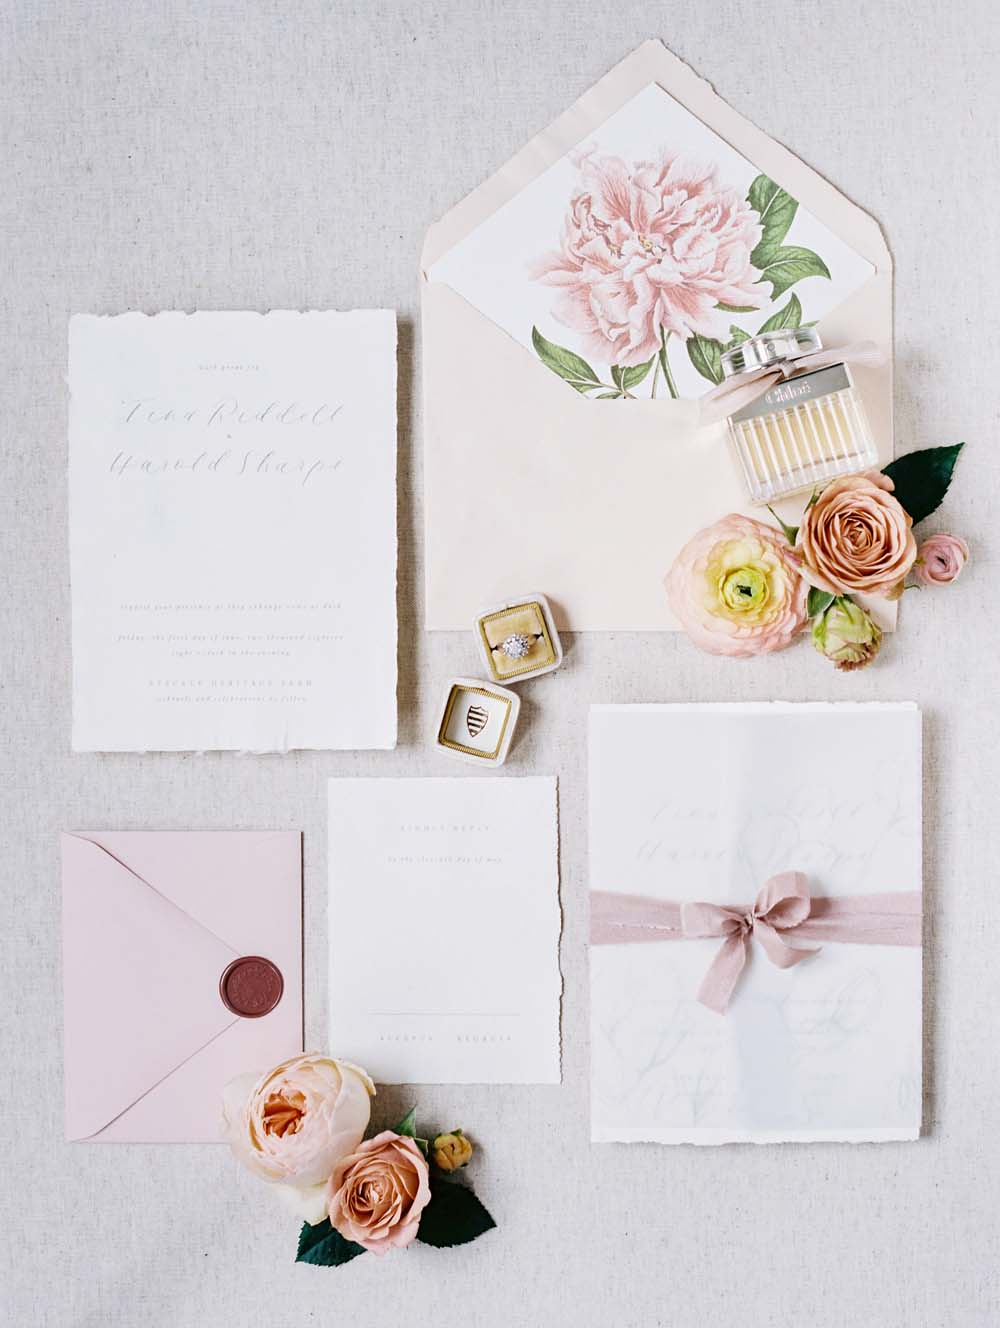 A Quirky Non-Traditional Wedding in Kitchener, Ontario - The invitations and ring